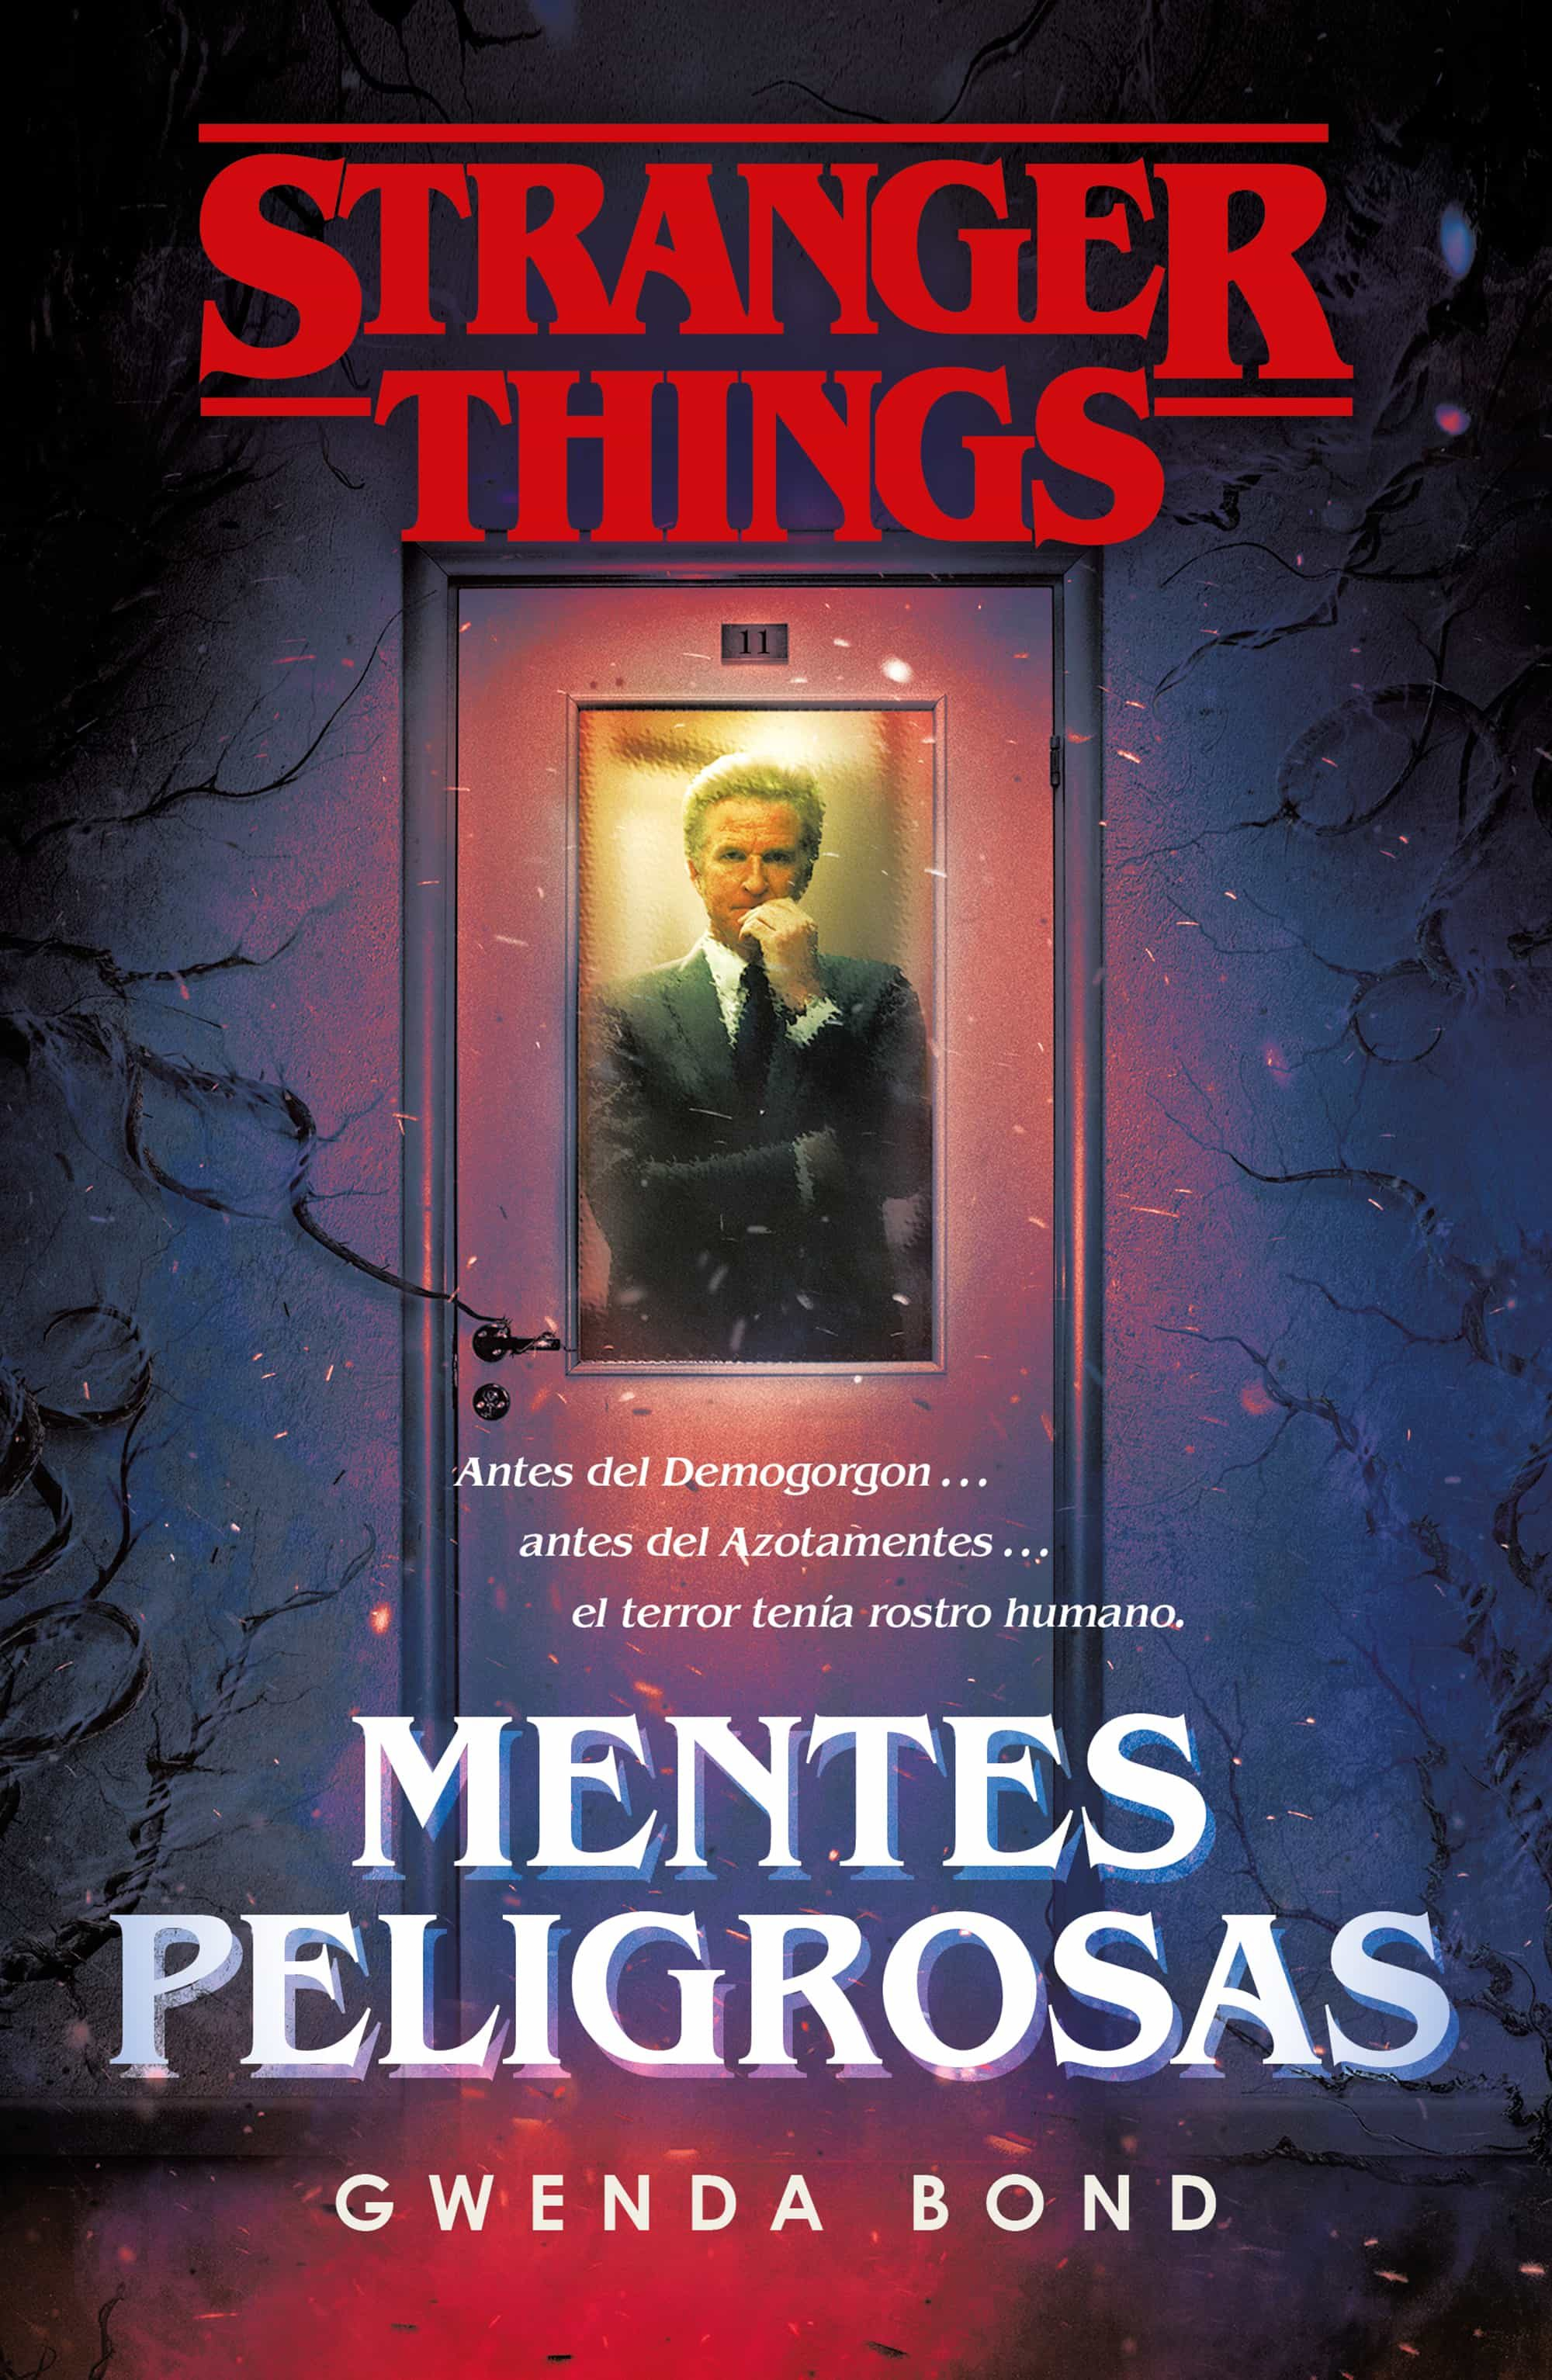 stranger things: mentes peligrosas-gwenda bond-9788401022975